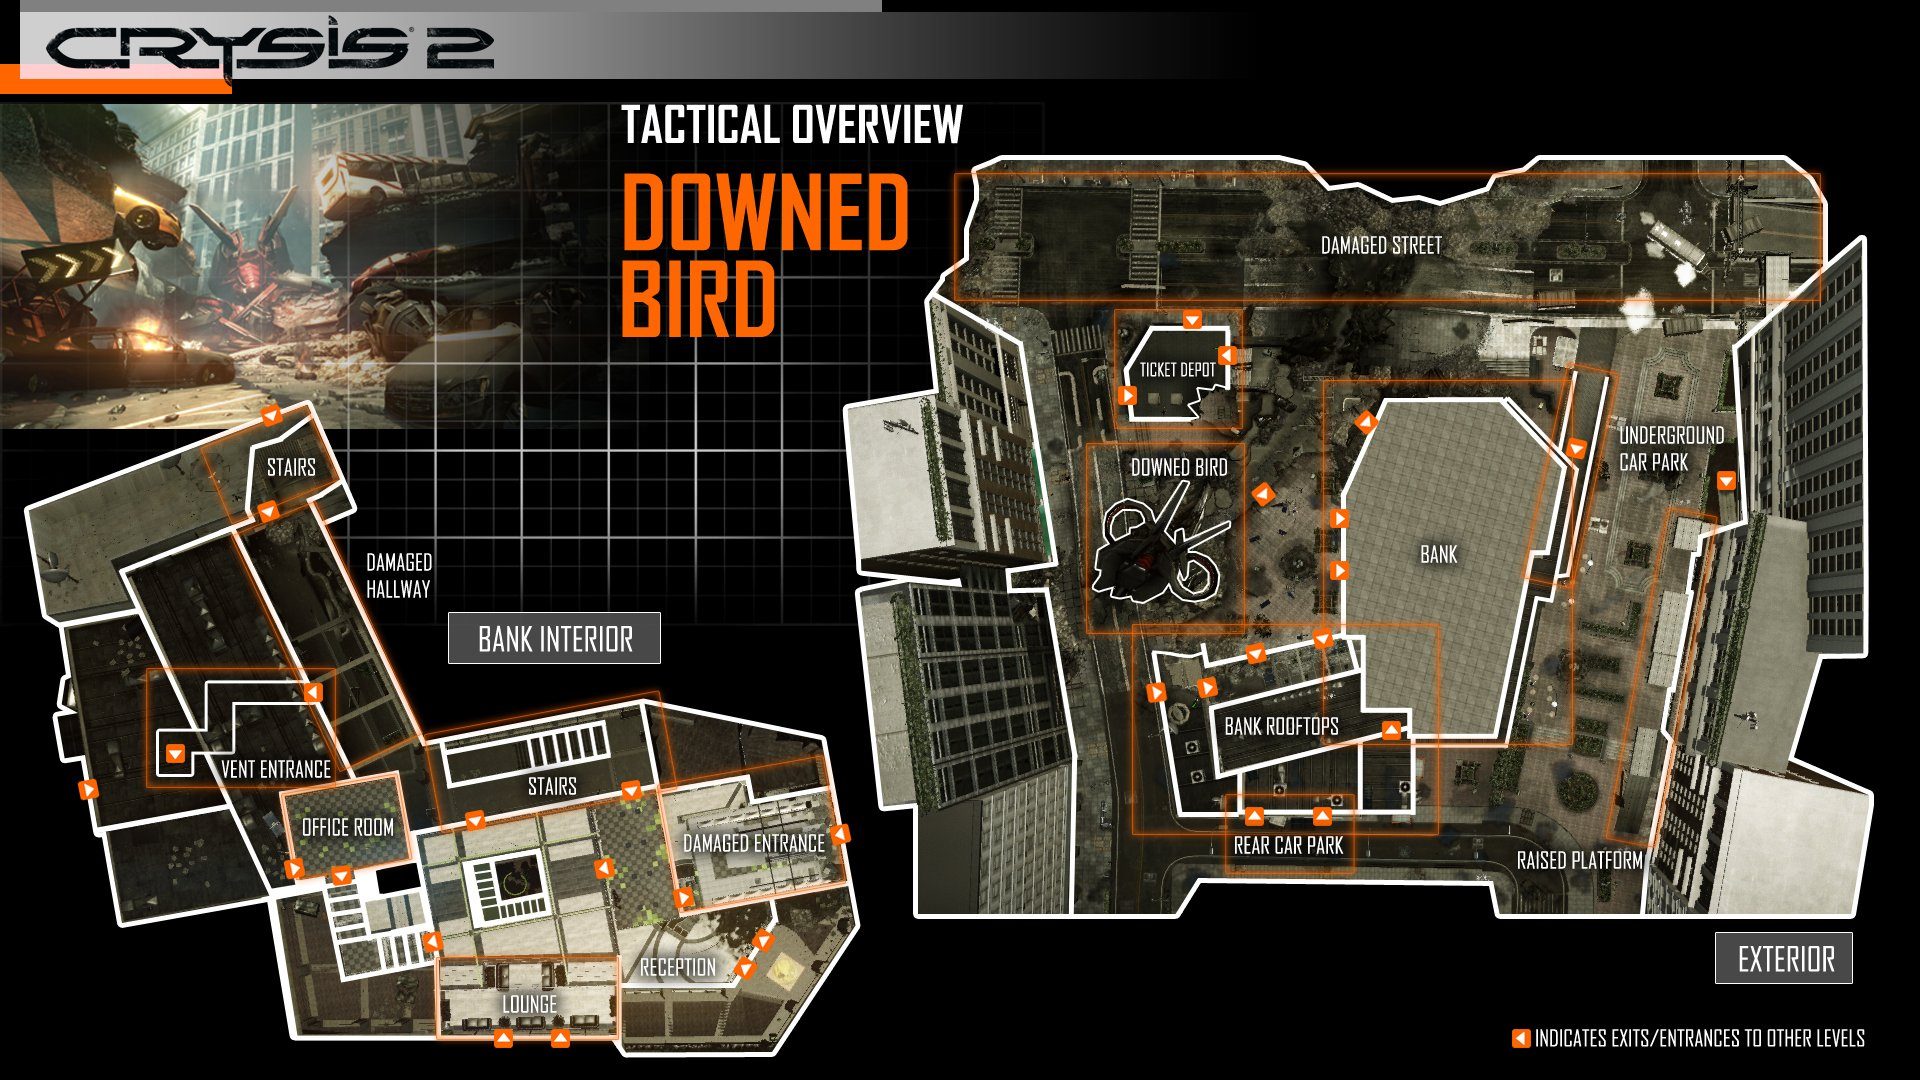 Downed_Bird_Tactical_Overview